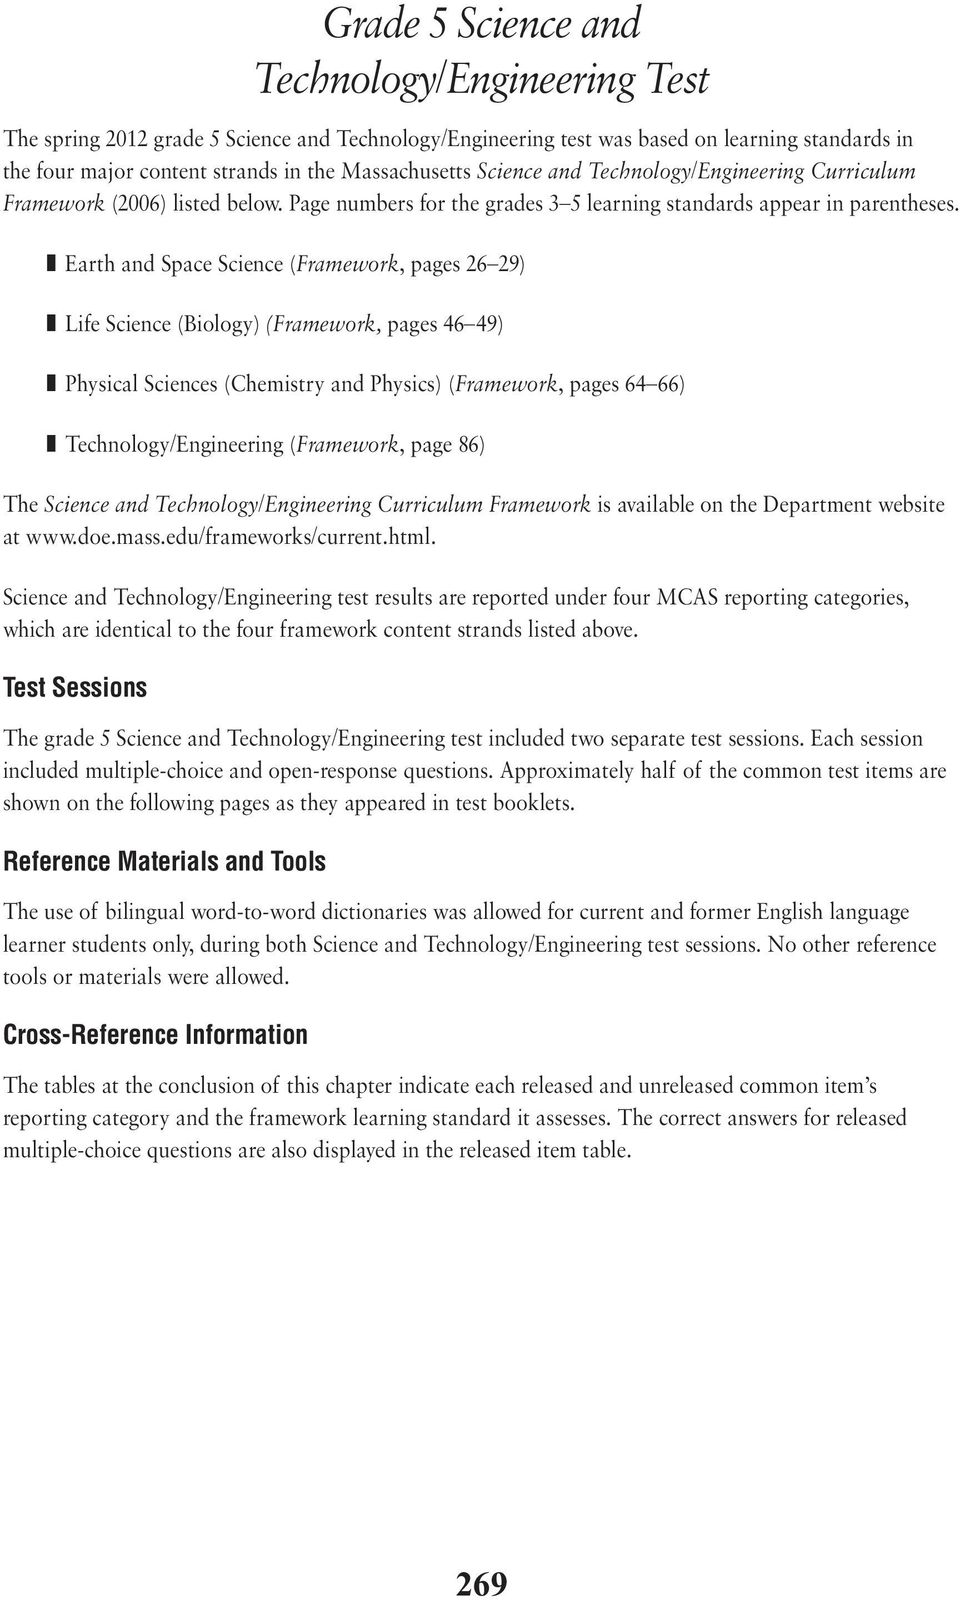 XVI  Science and Technology/Engineering, Grade 5 - PDF